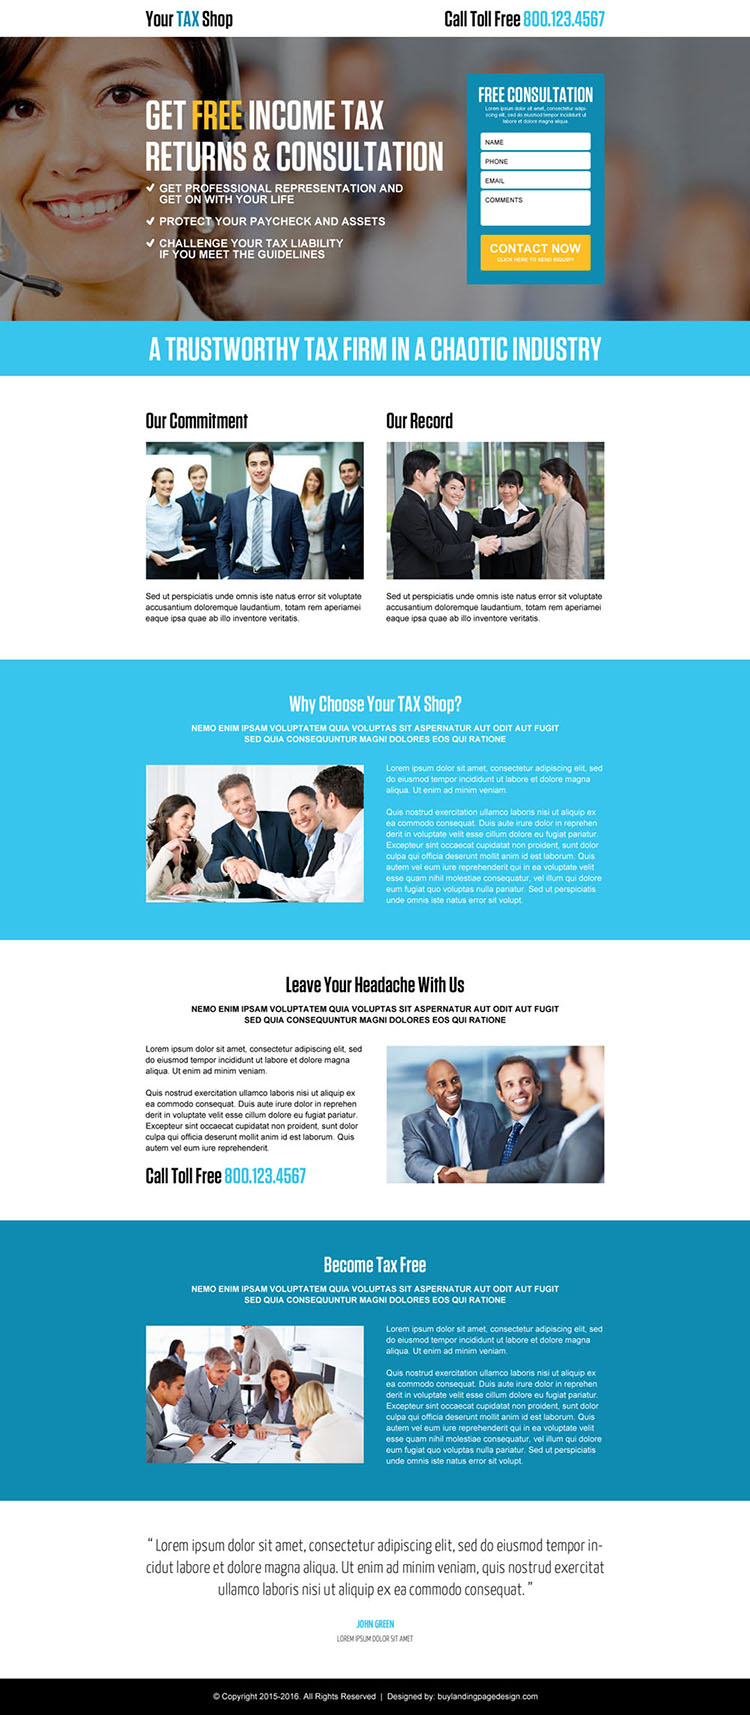 income tax return free consultation lead capture landing page design